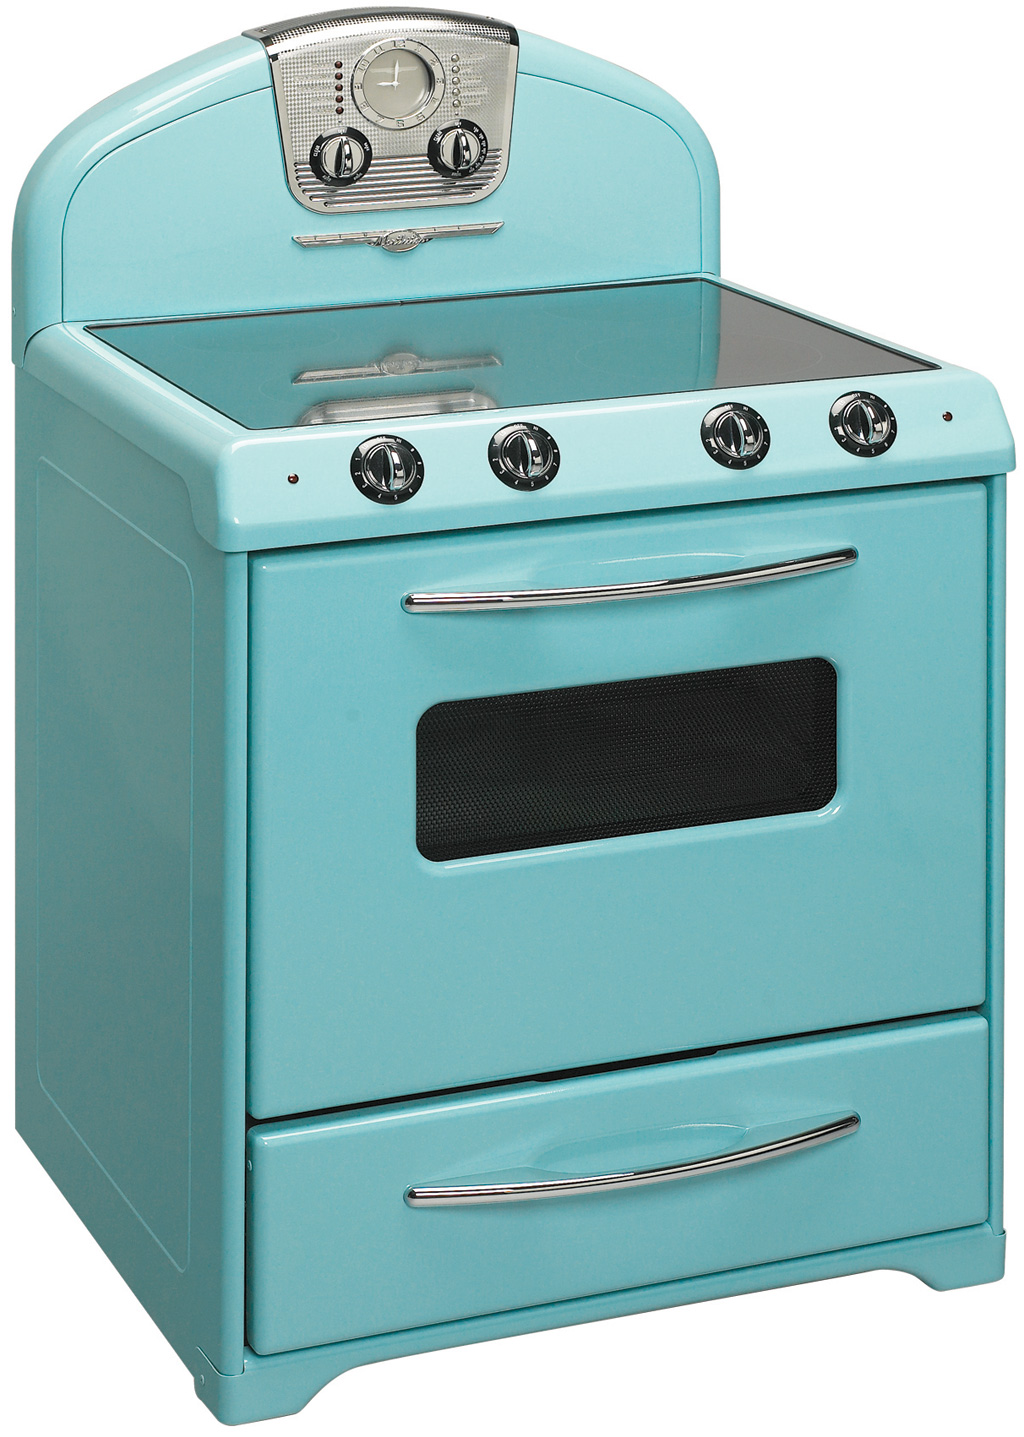 northstar range models northstar retro stoves. Black Bedroom Furniture Sets. Home Design Ideas